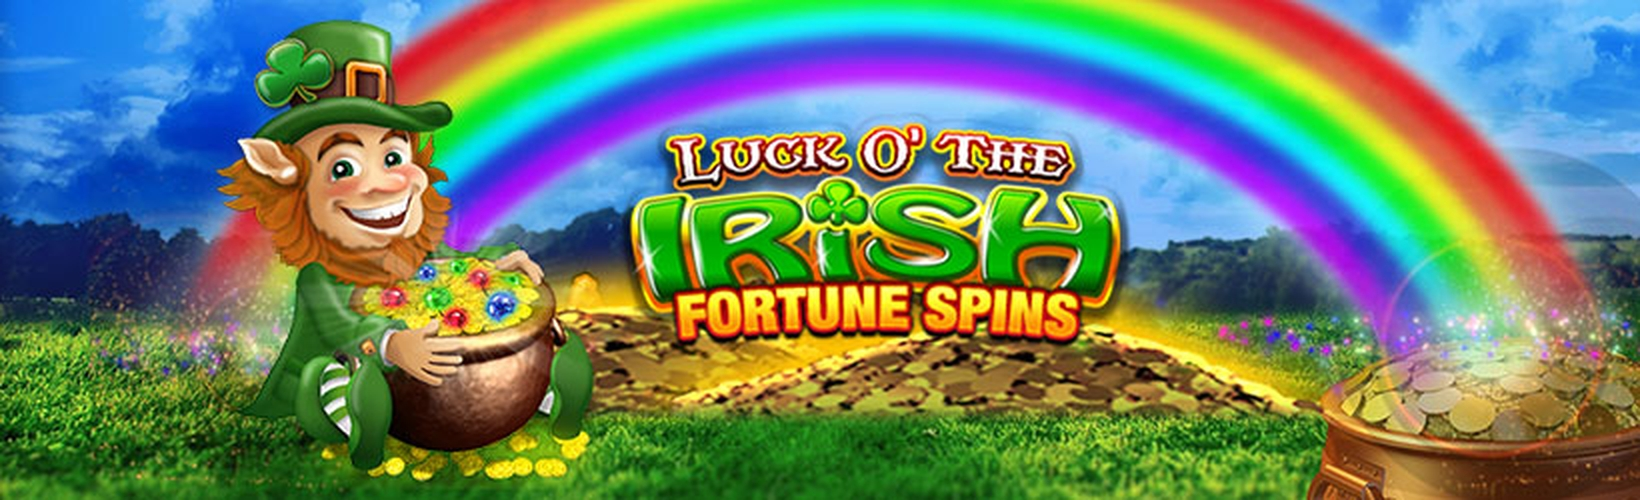 The Luck O' The Irish Fortune Spins Online Slot Demo Game by Blueprint Gaming